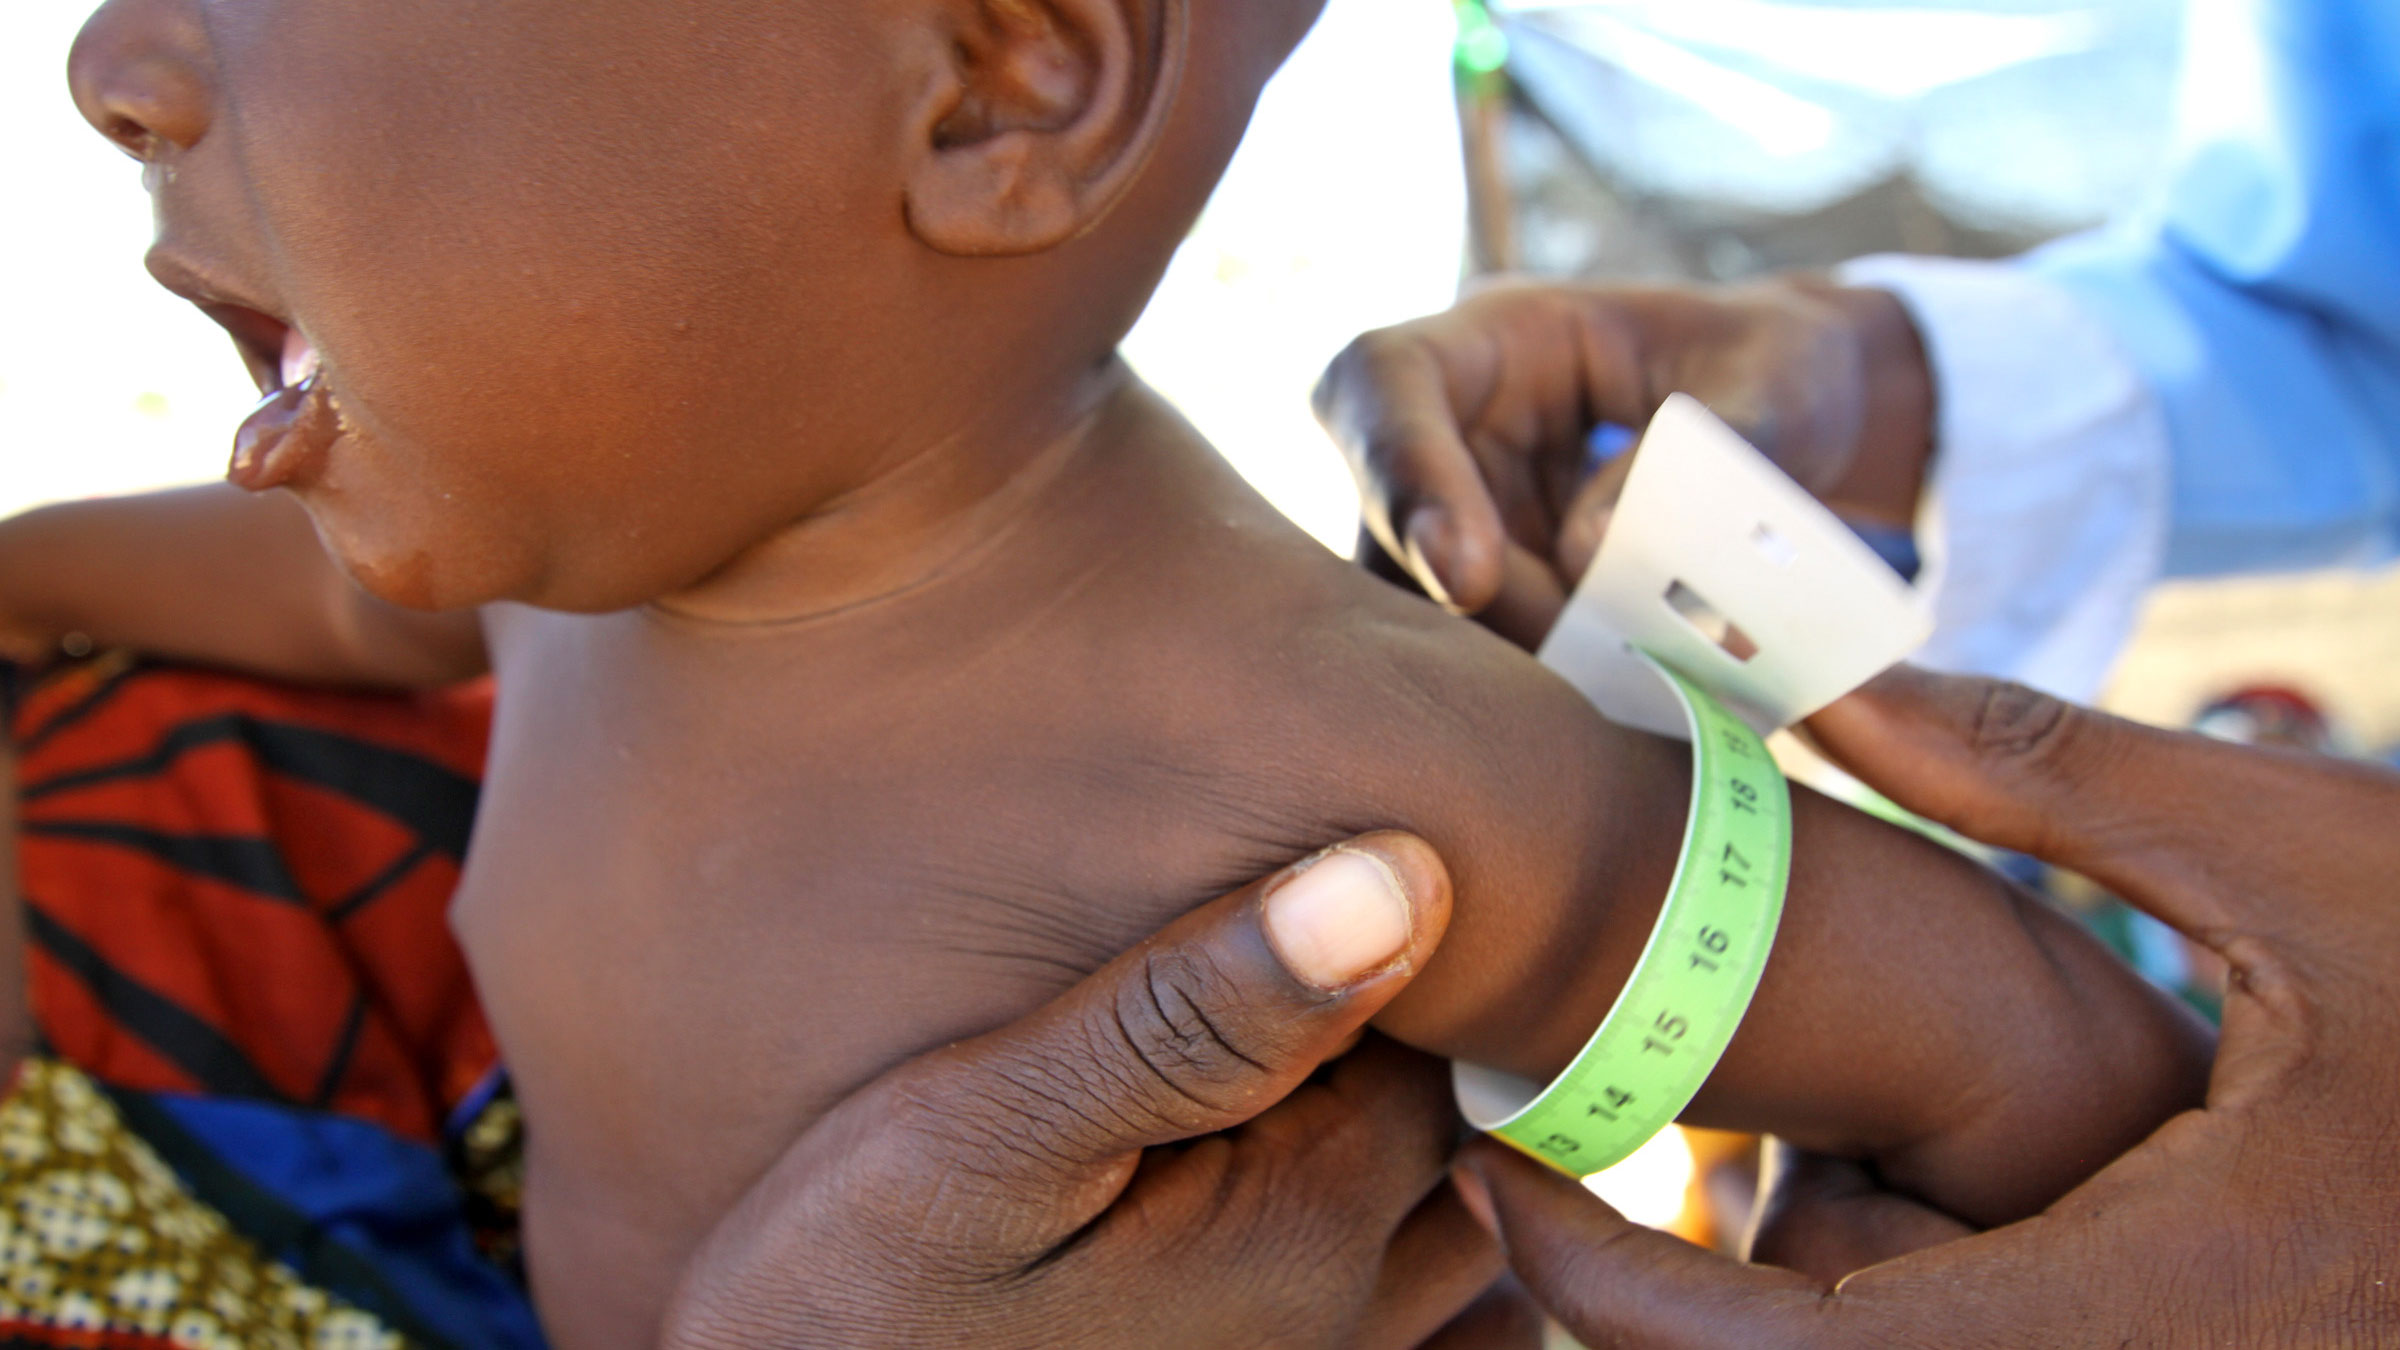 A young child being measured for signs of malnutrition in World Food Programme run therapeutic feeding center near Maradai, Niger